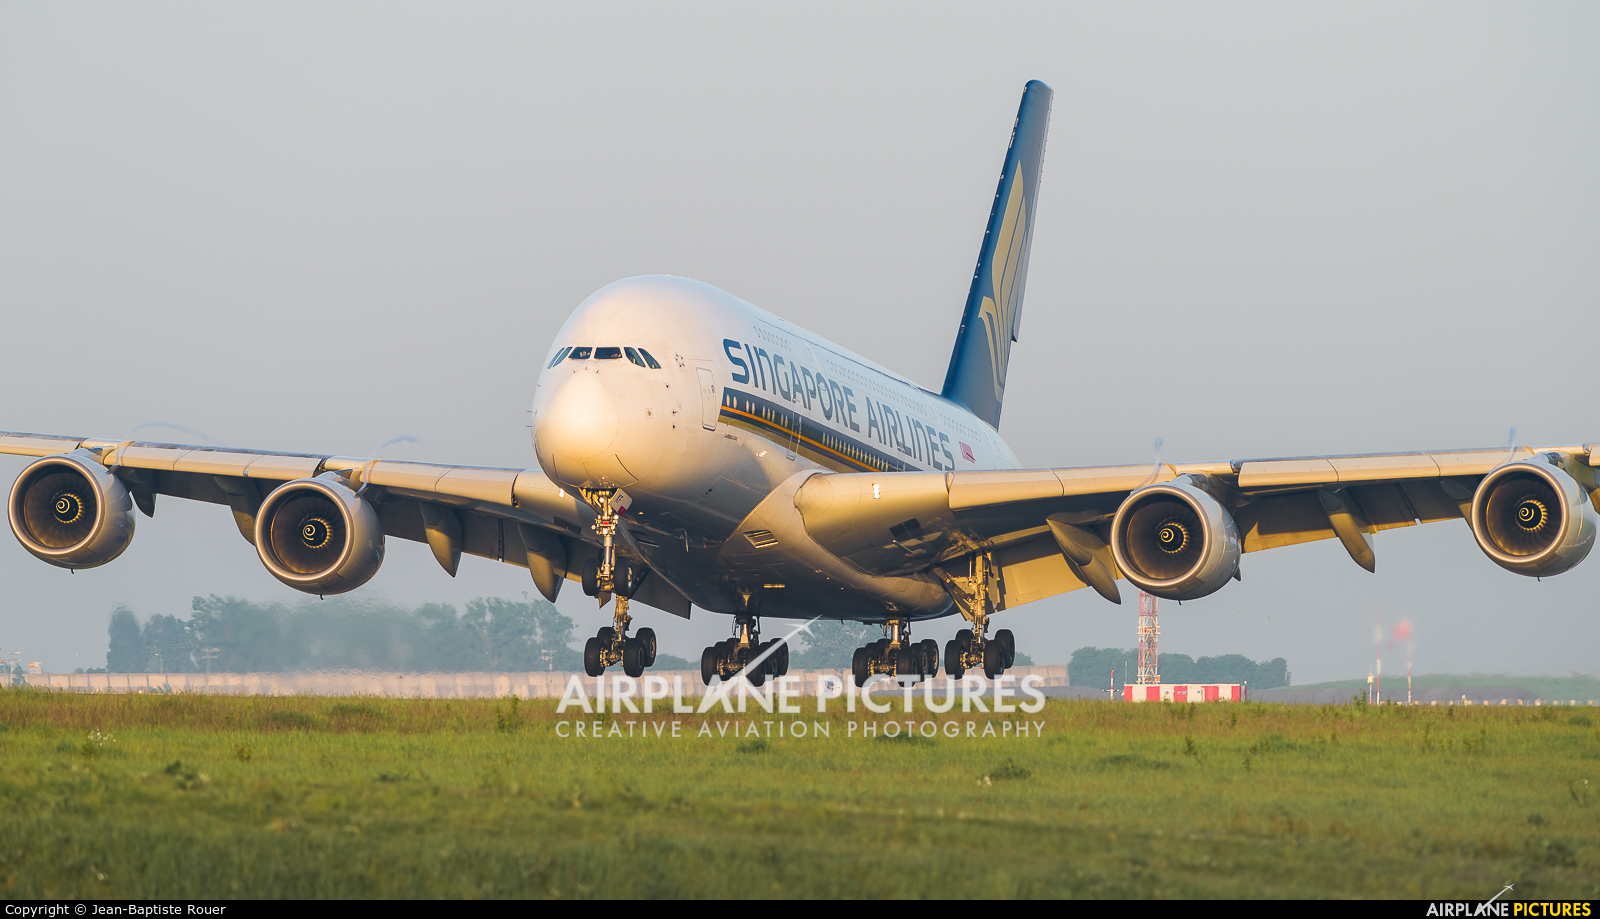 Singapore Airlines 9V-SKF aircraft at Paris - Charles de Gaulle